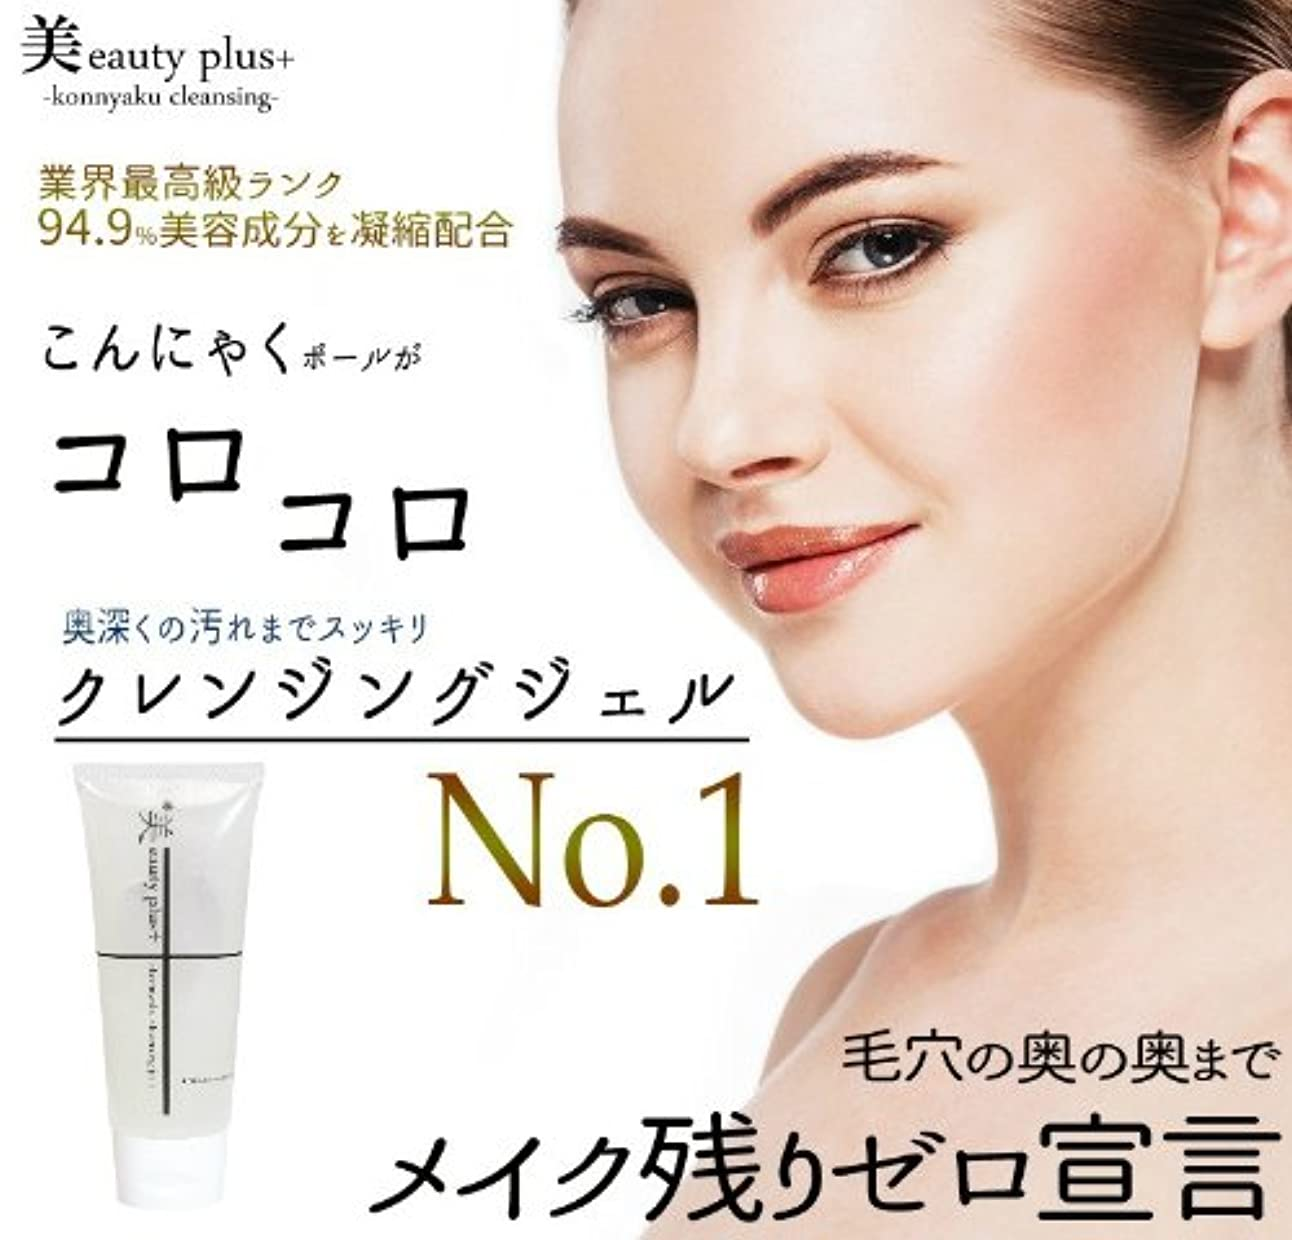 無一文聞きます騙す美eauty Plus+ Konnyaku Cleansing Jel